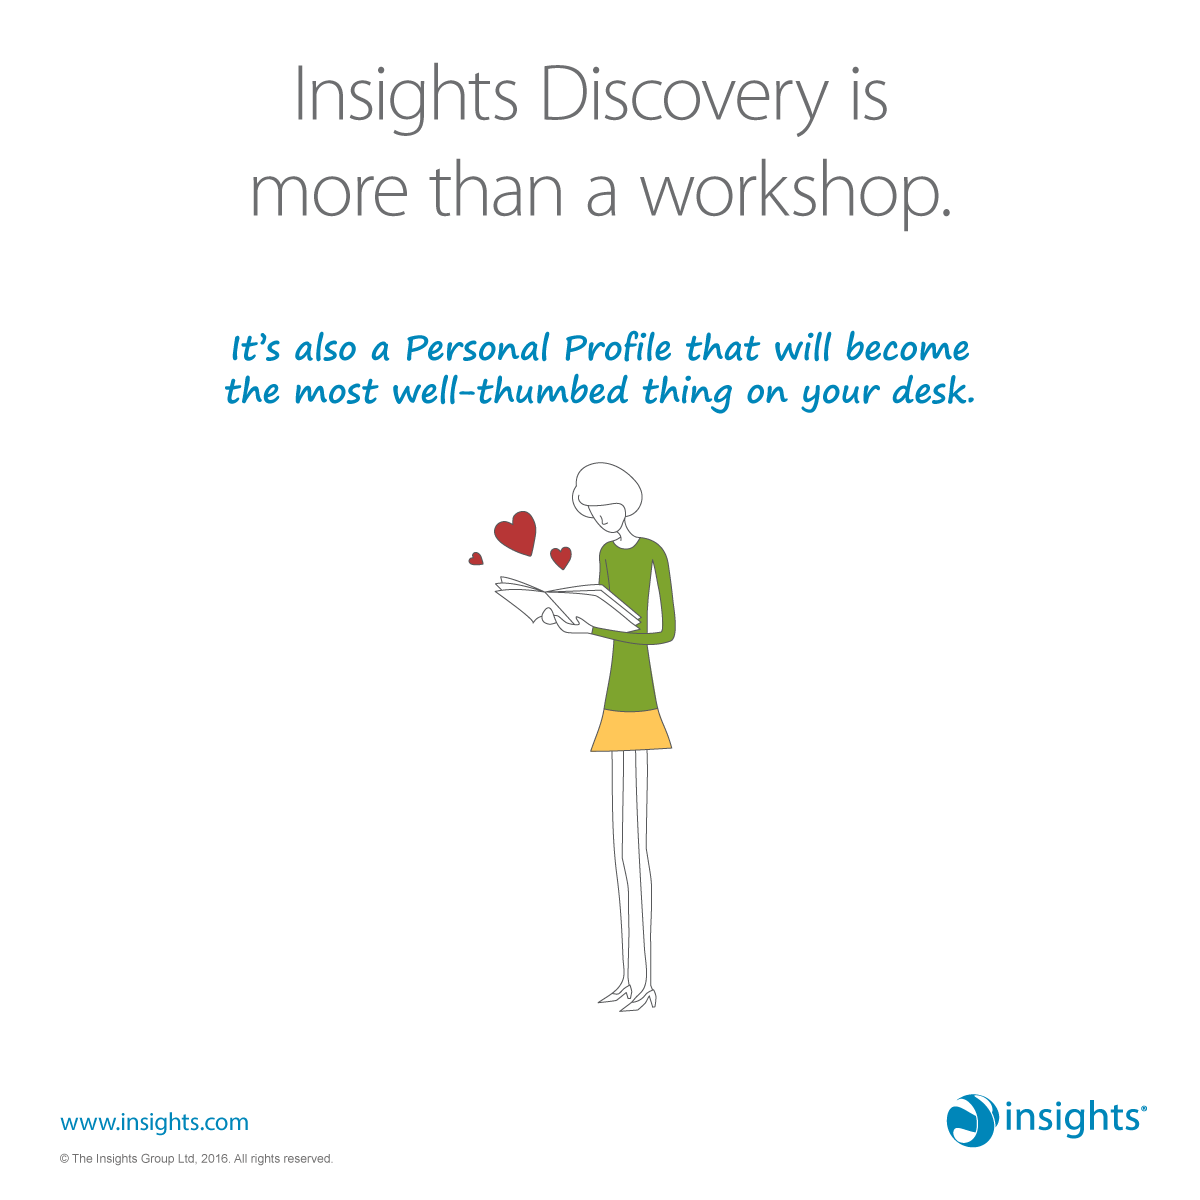 Insights Discovery is more than a workshop. It's also a Personal Profile that will become the most well-thumbed thing on your desk.